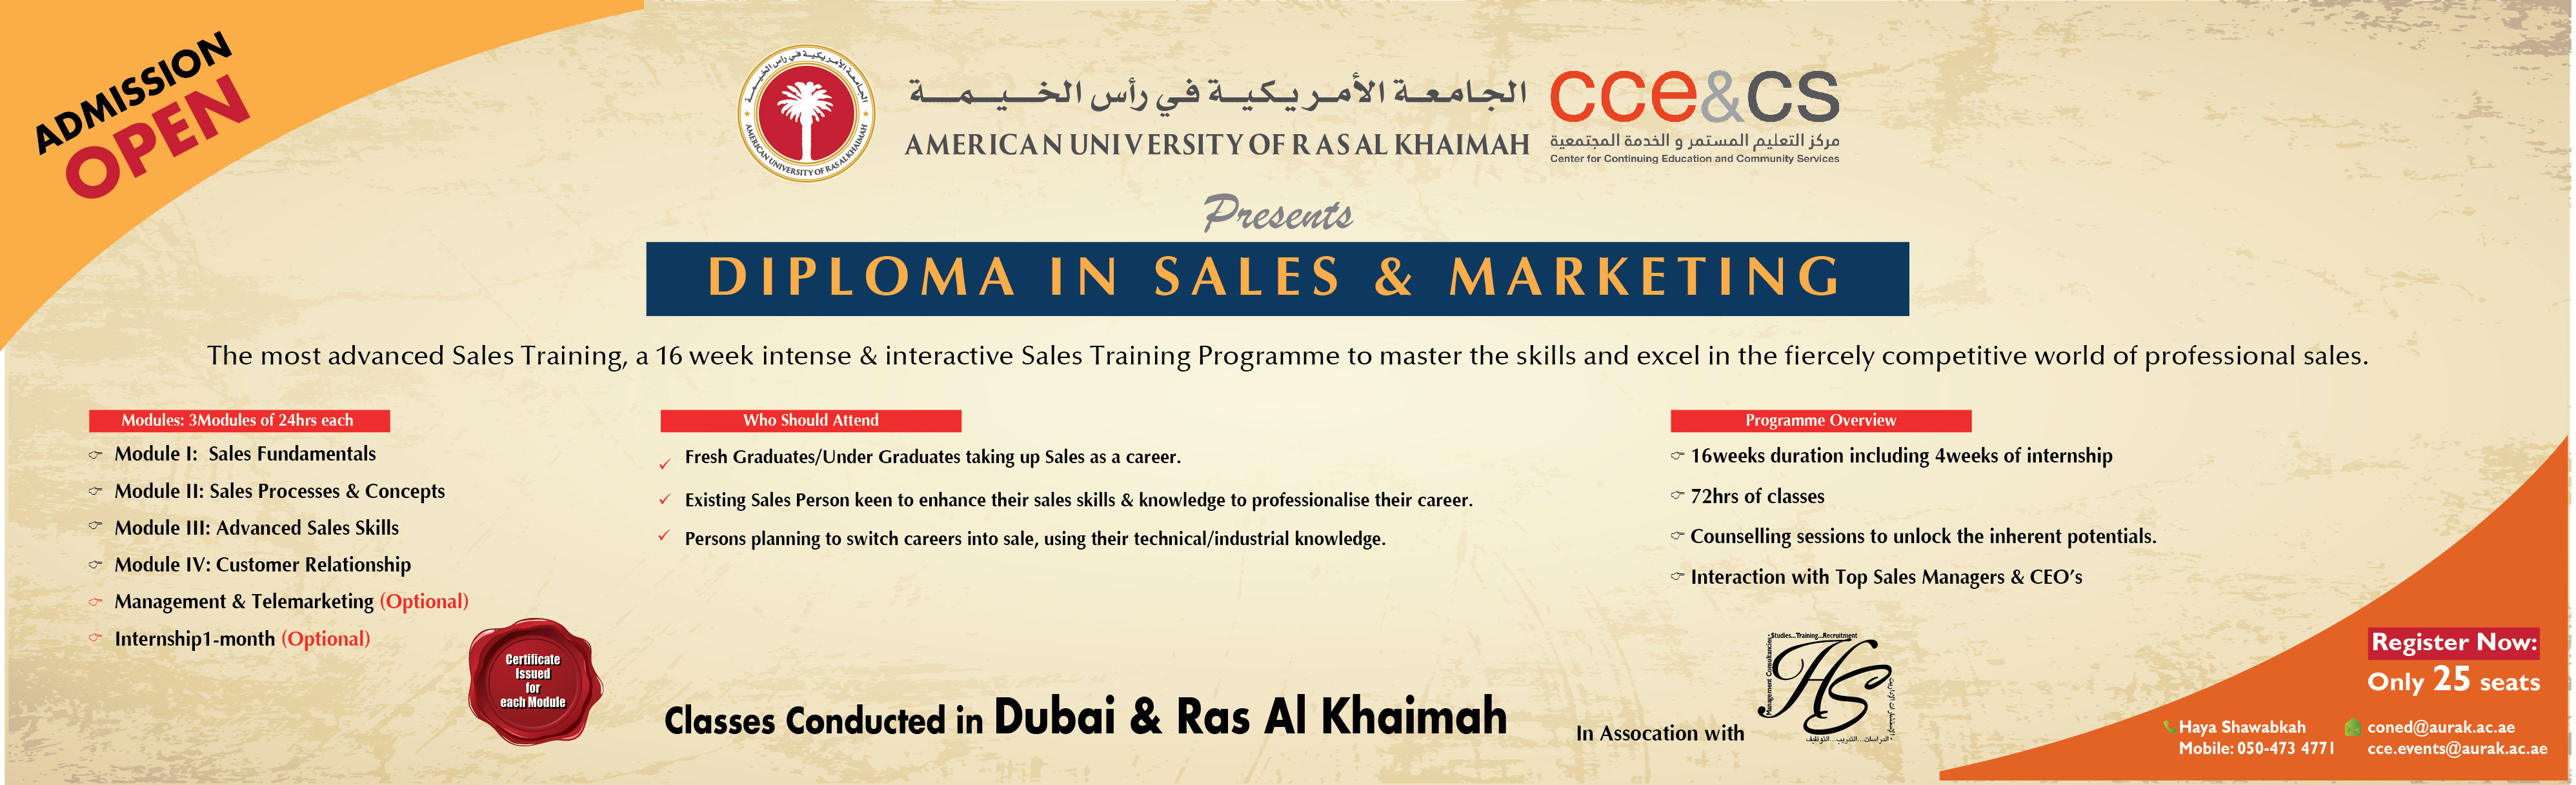 Cce 1 American University Of Ras Al Khaimah Uae